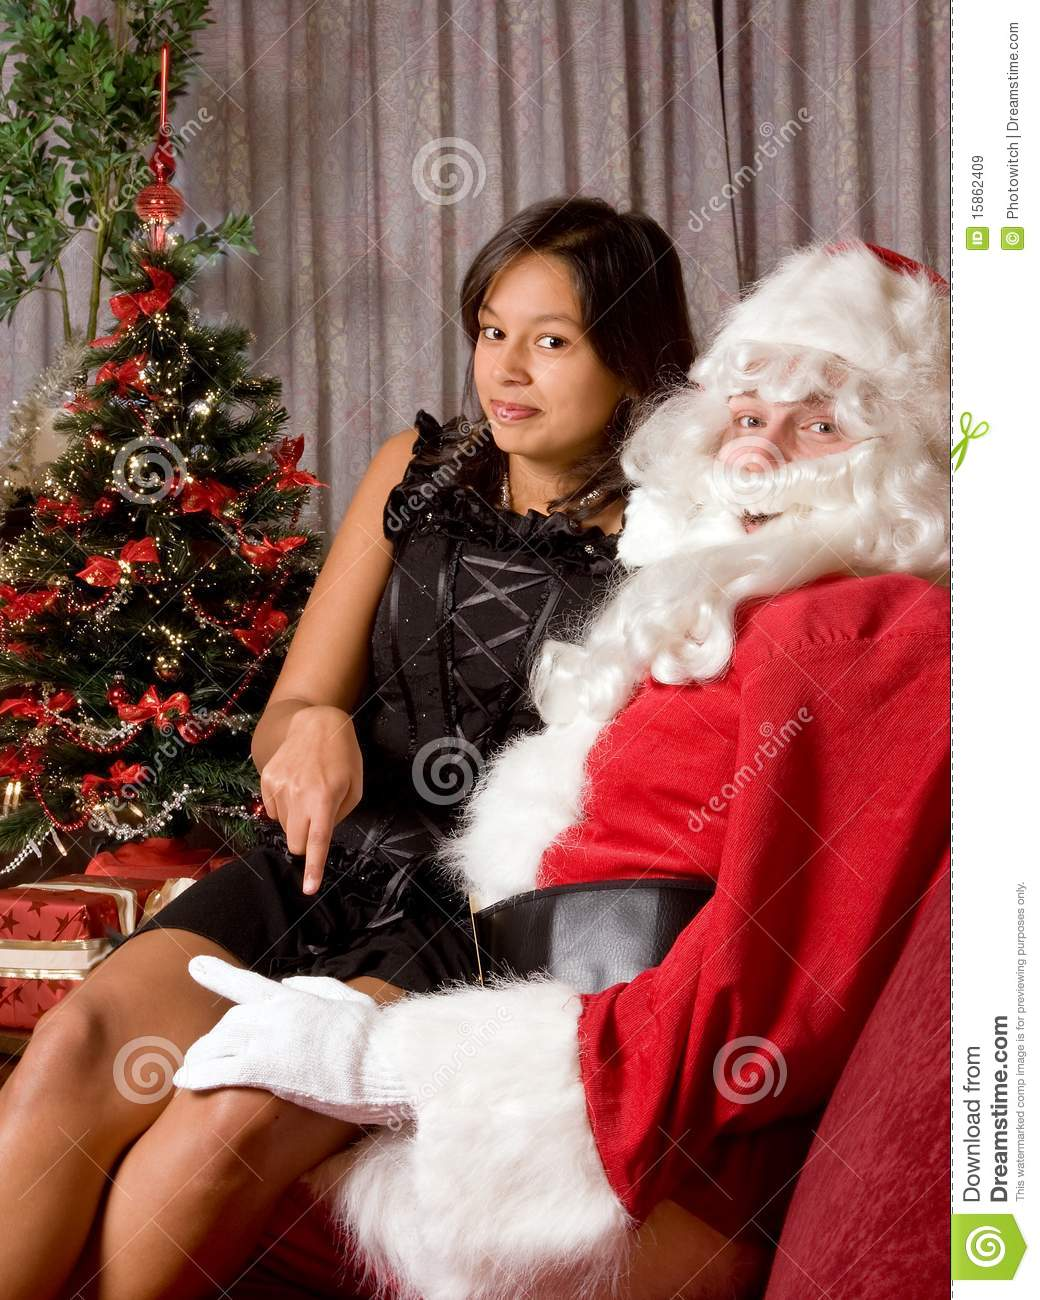 naught santa pictures naughty santa stock image image of provocative holidays 9504